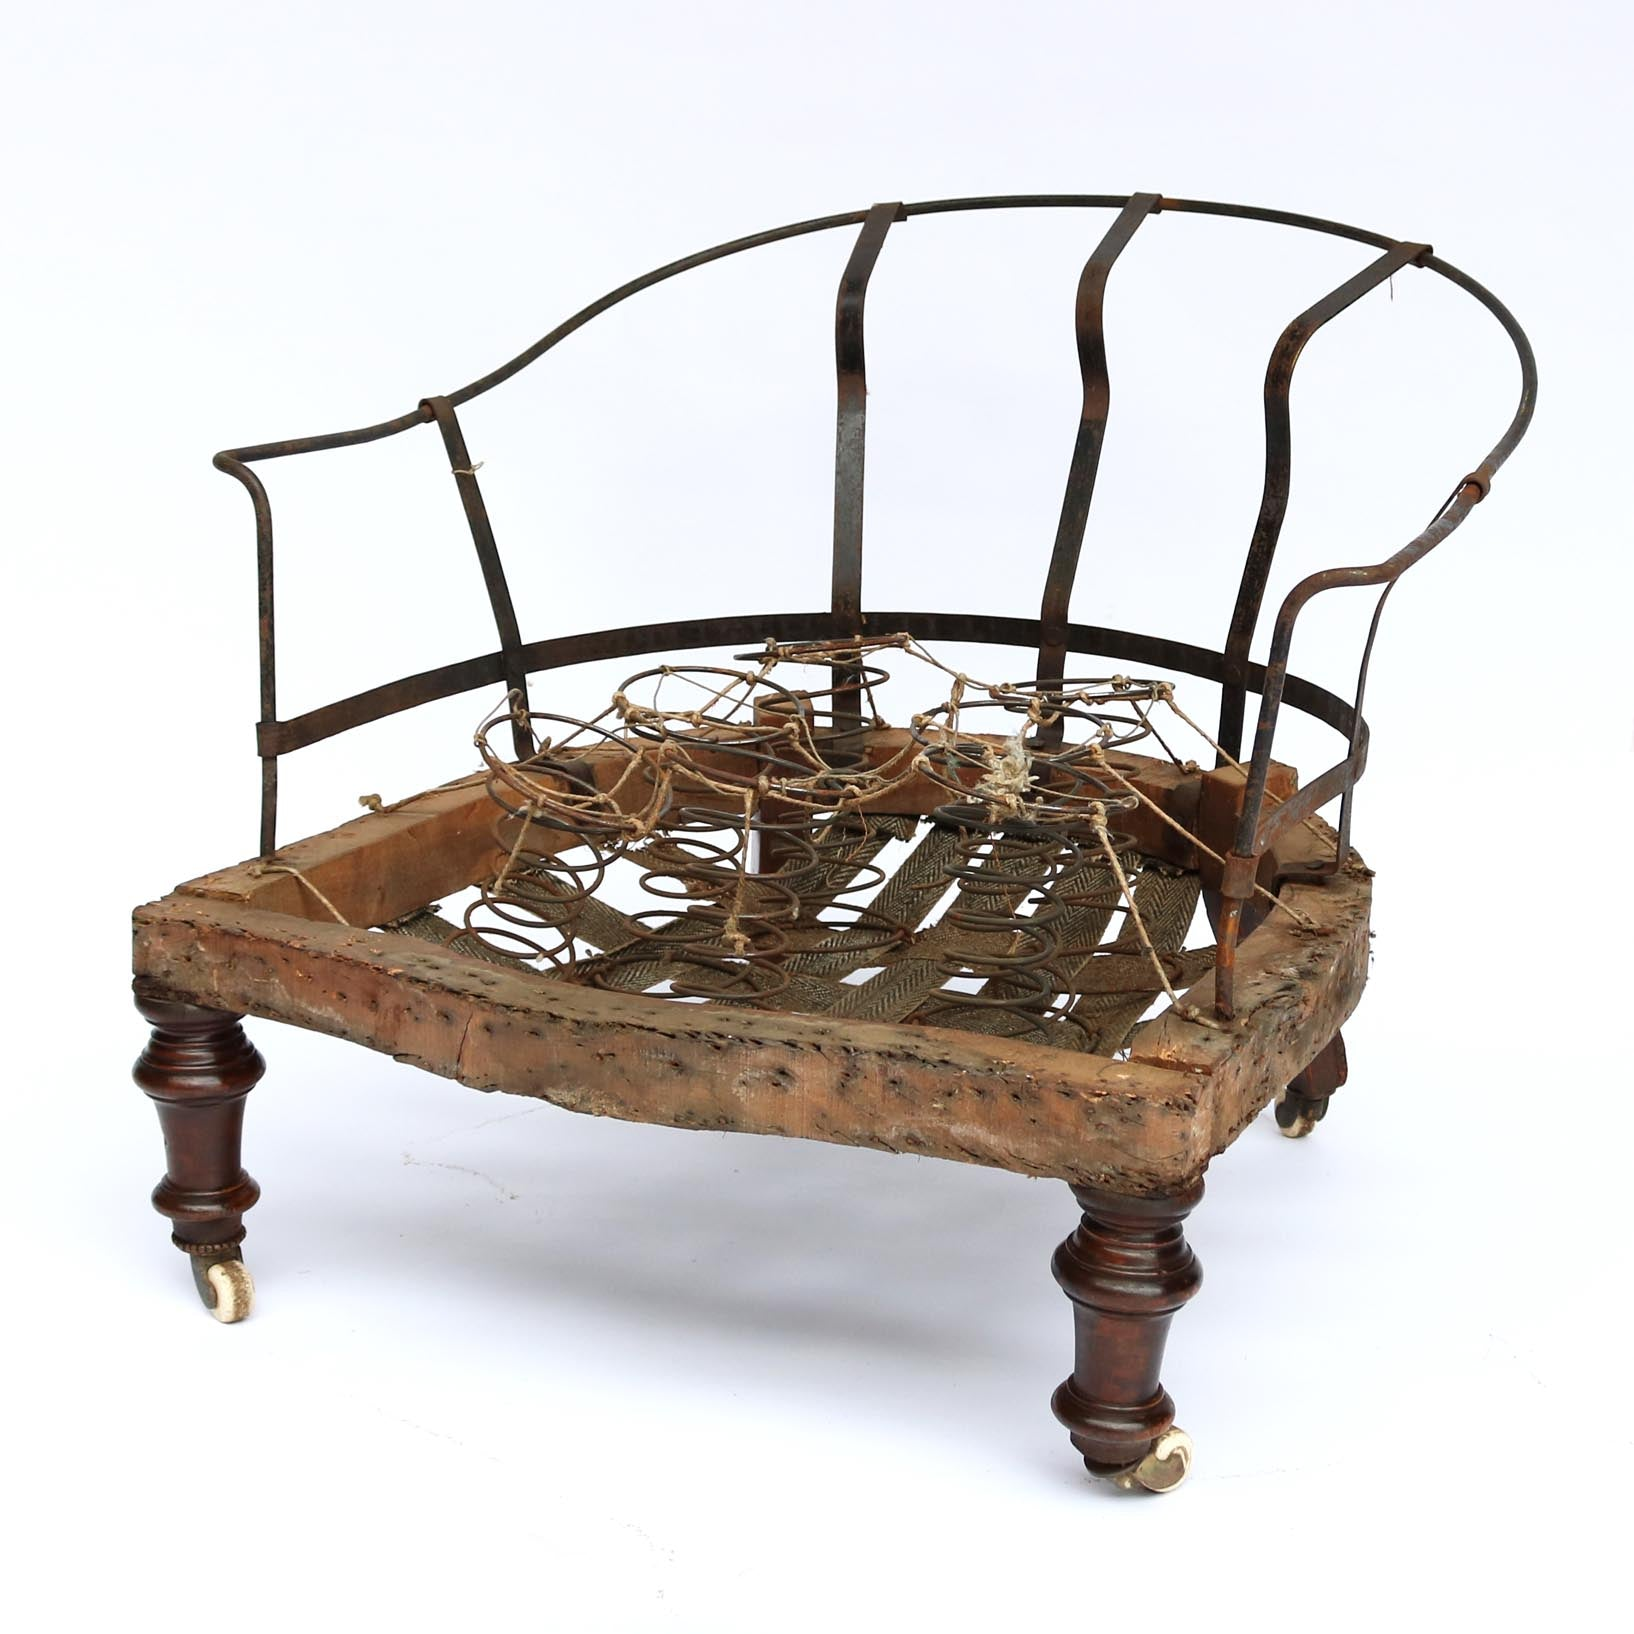 Victorian nursing chair frame.  sc 1 st  The Architectural Forum & Victorian Nursing Chair Frame